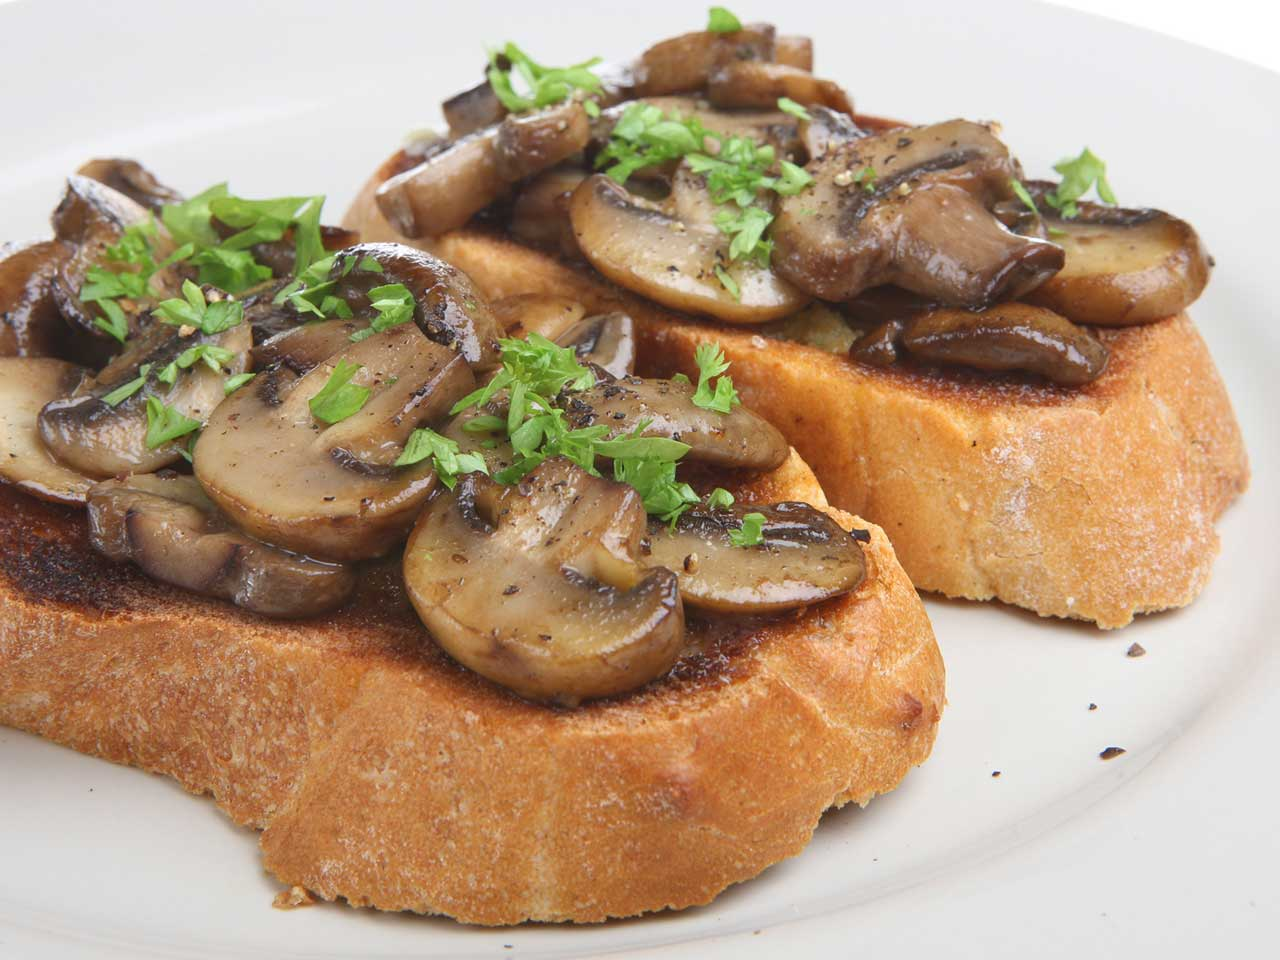 Creamy garlic mushrooms on toast